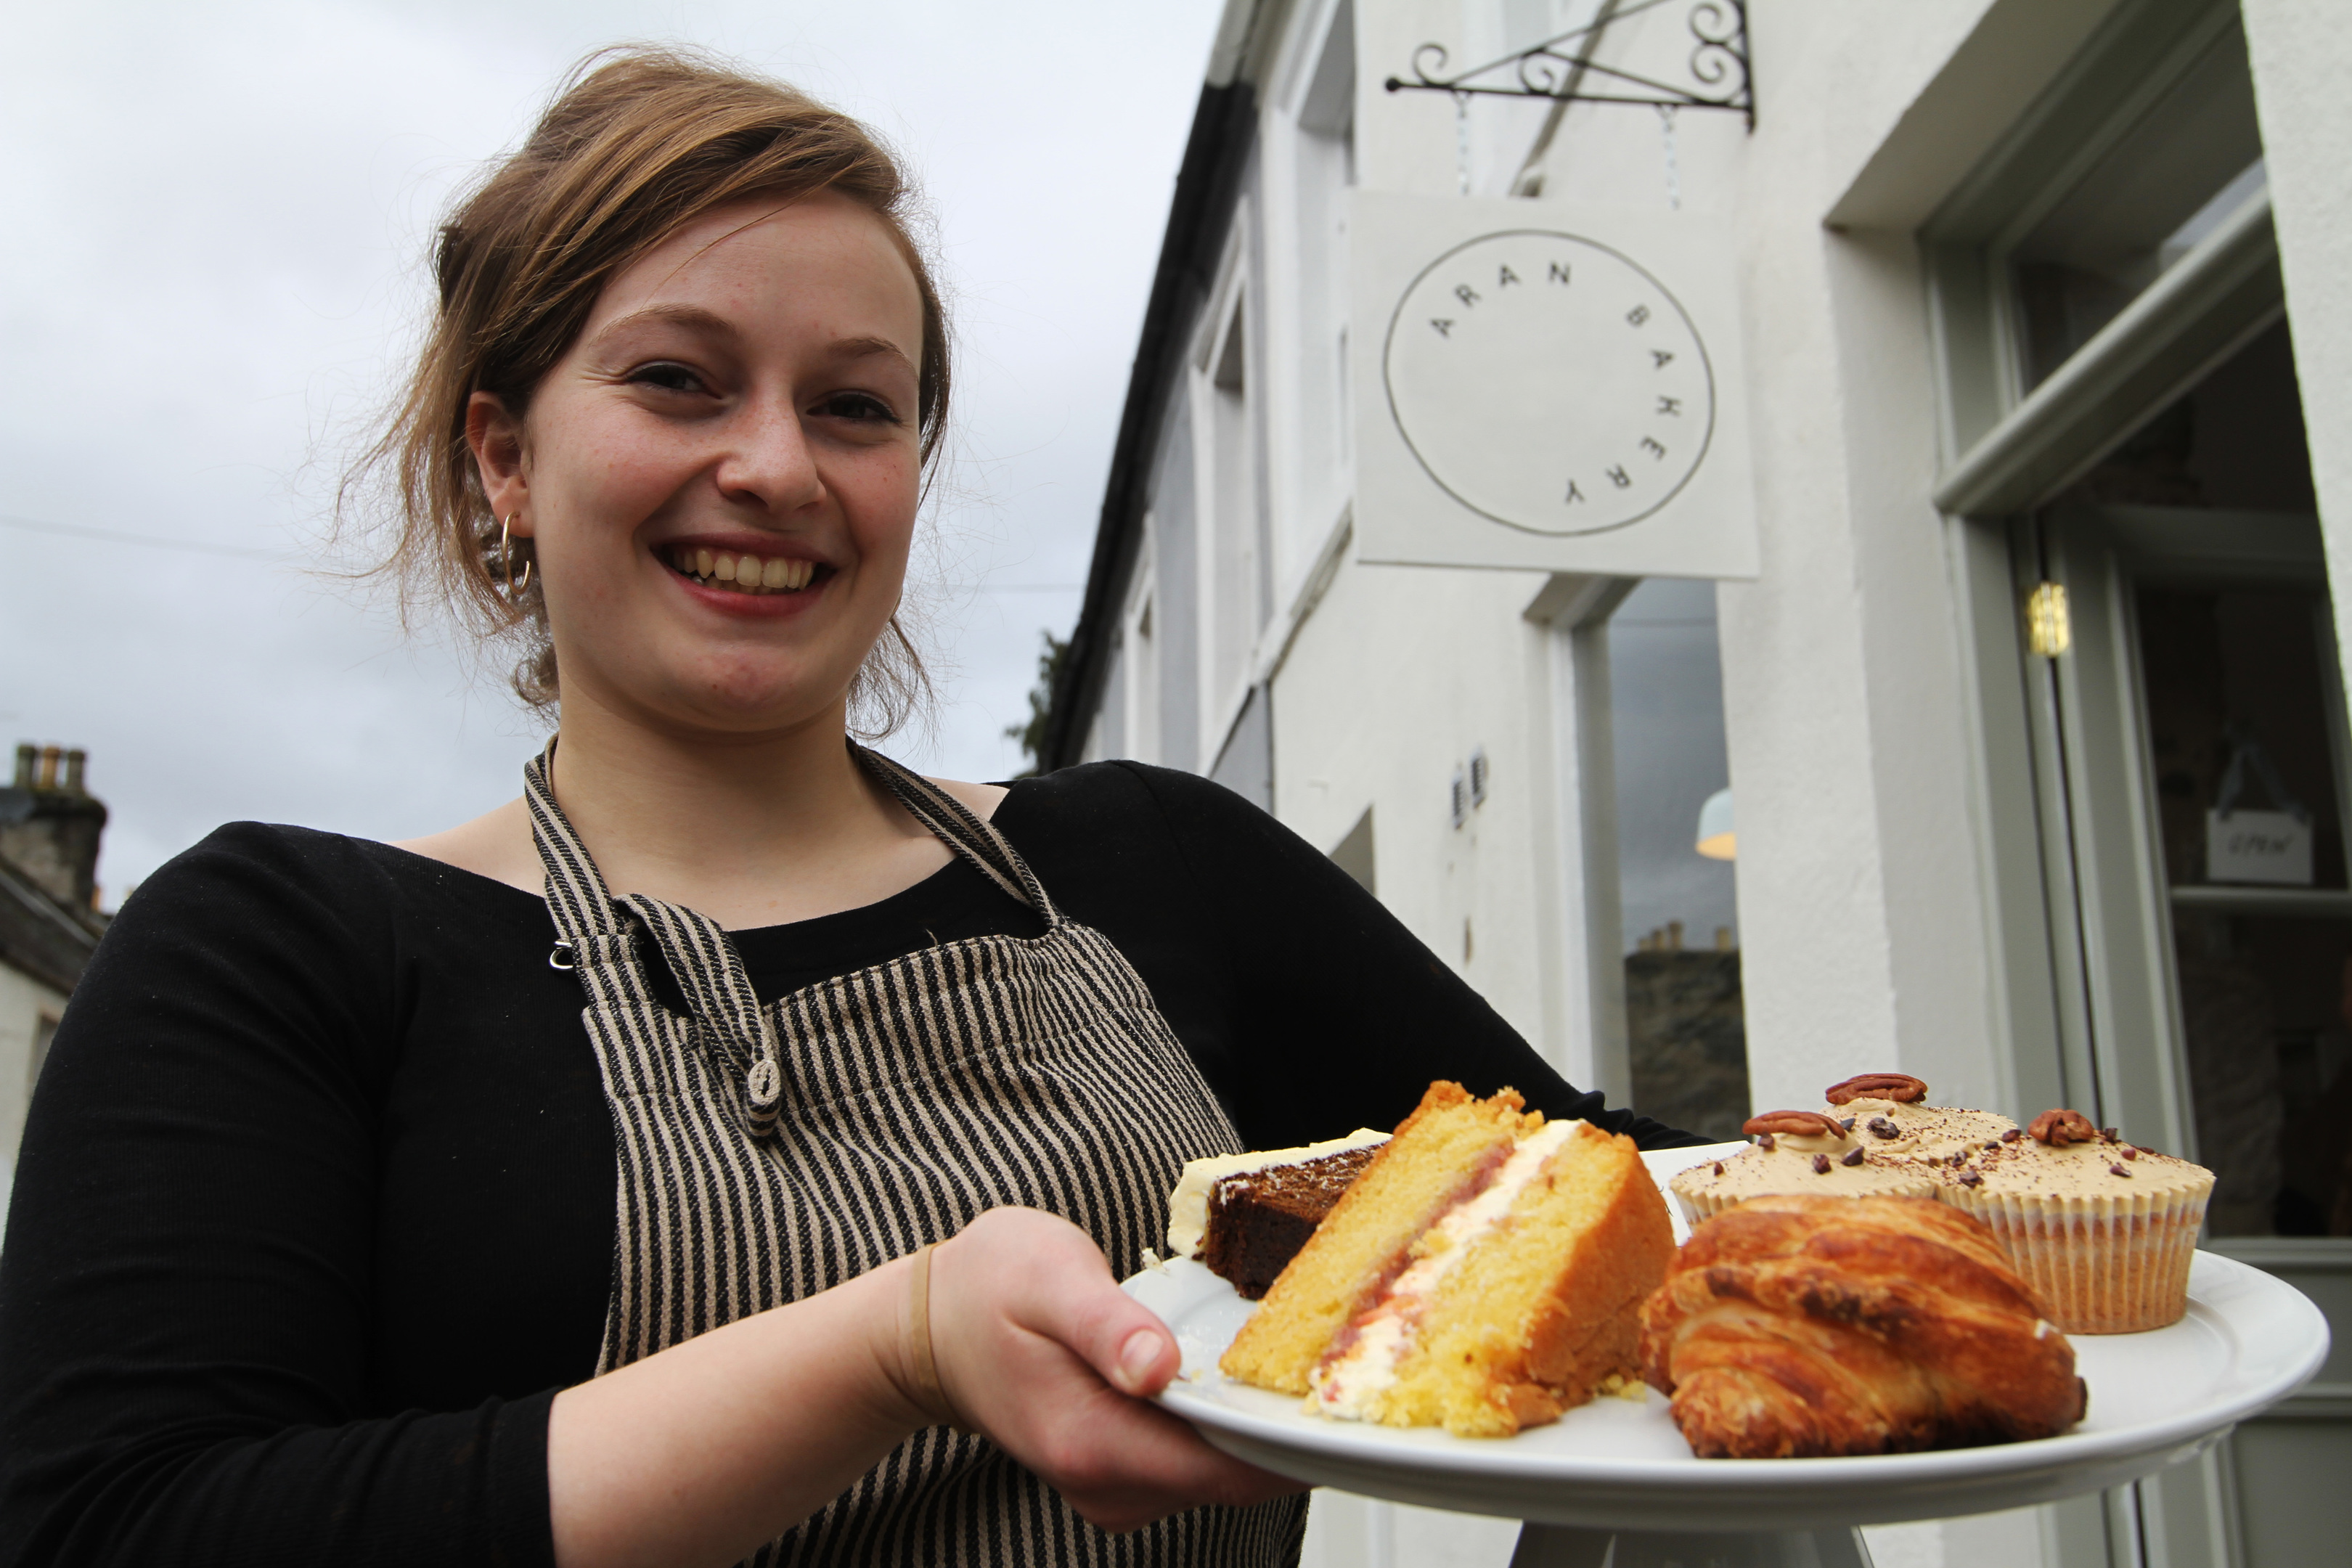 Flora Shedden has opened her long-anticipated bakery in Dunkeld.